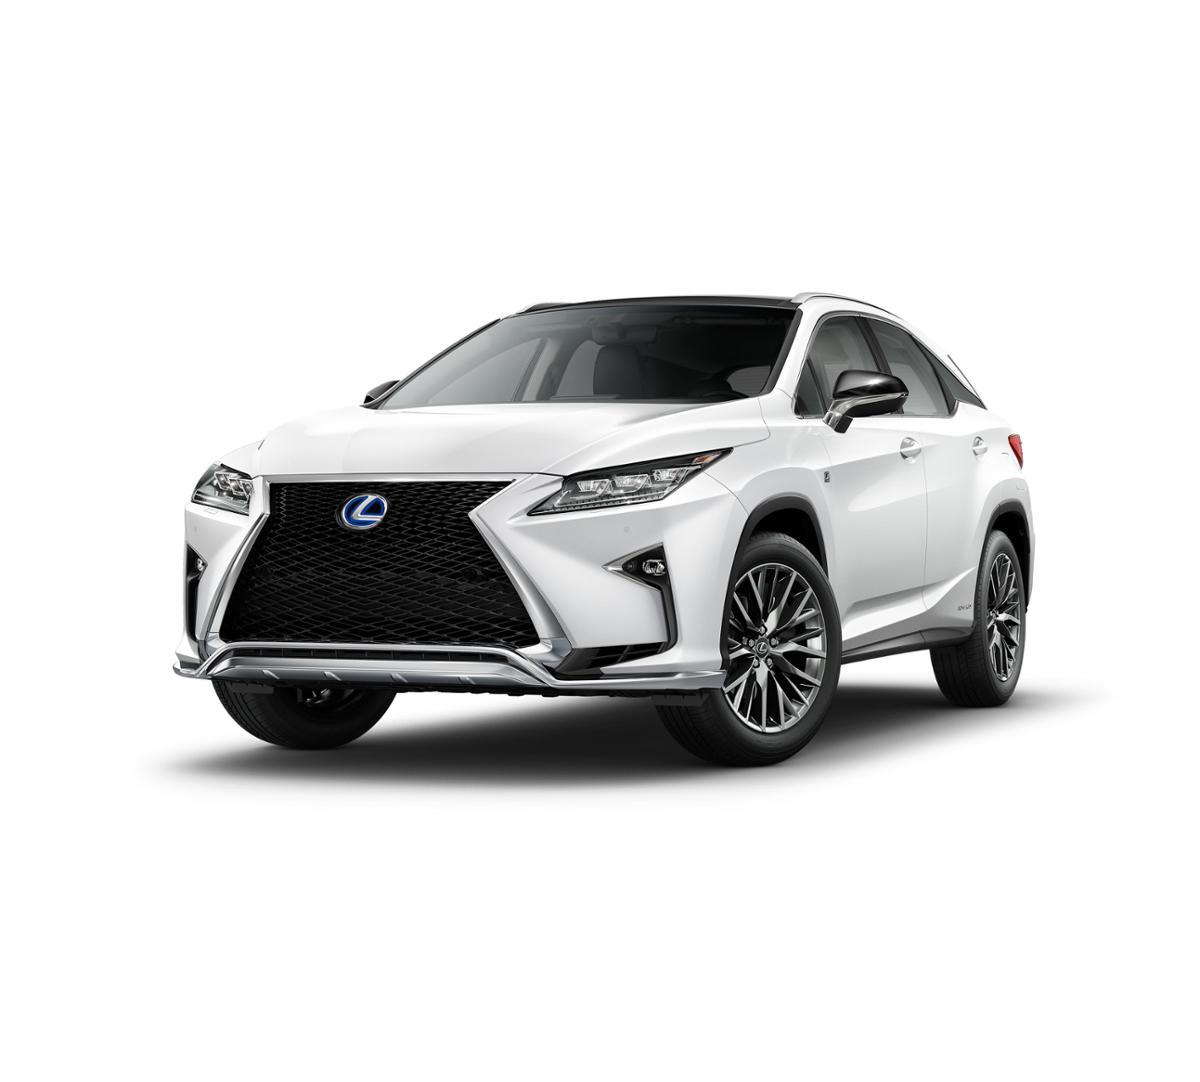 2017 Lexus RX 450h Vehicle Photo in Santa Monica, CA 90404